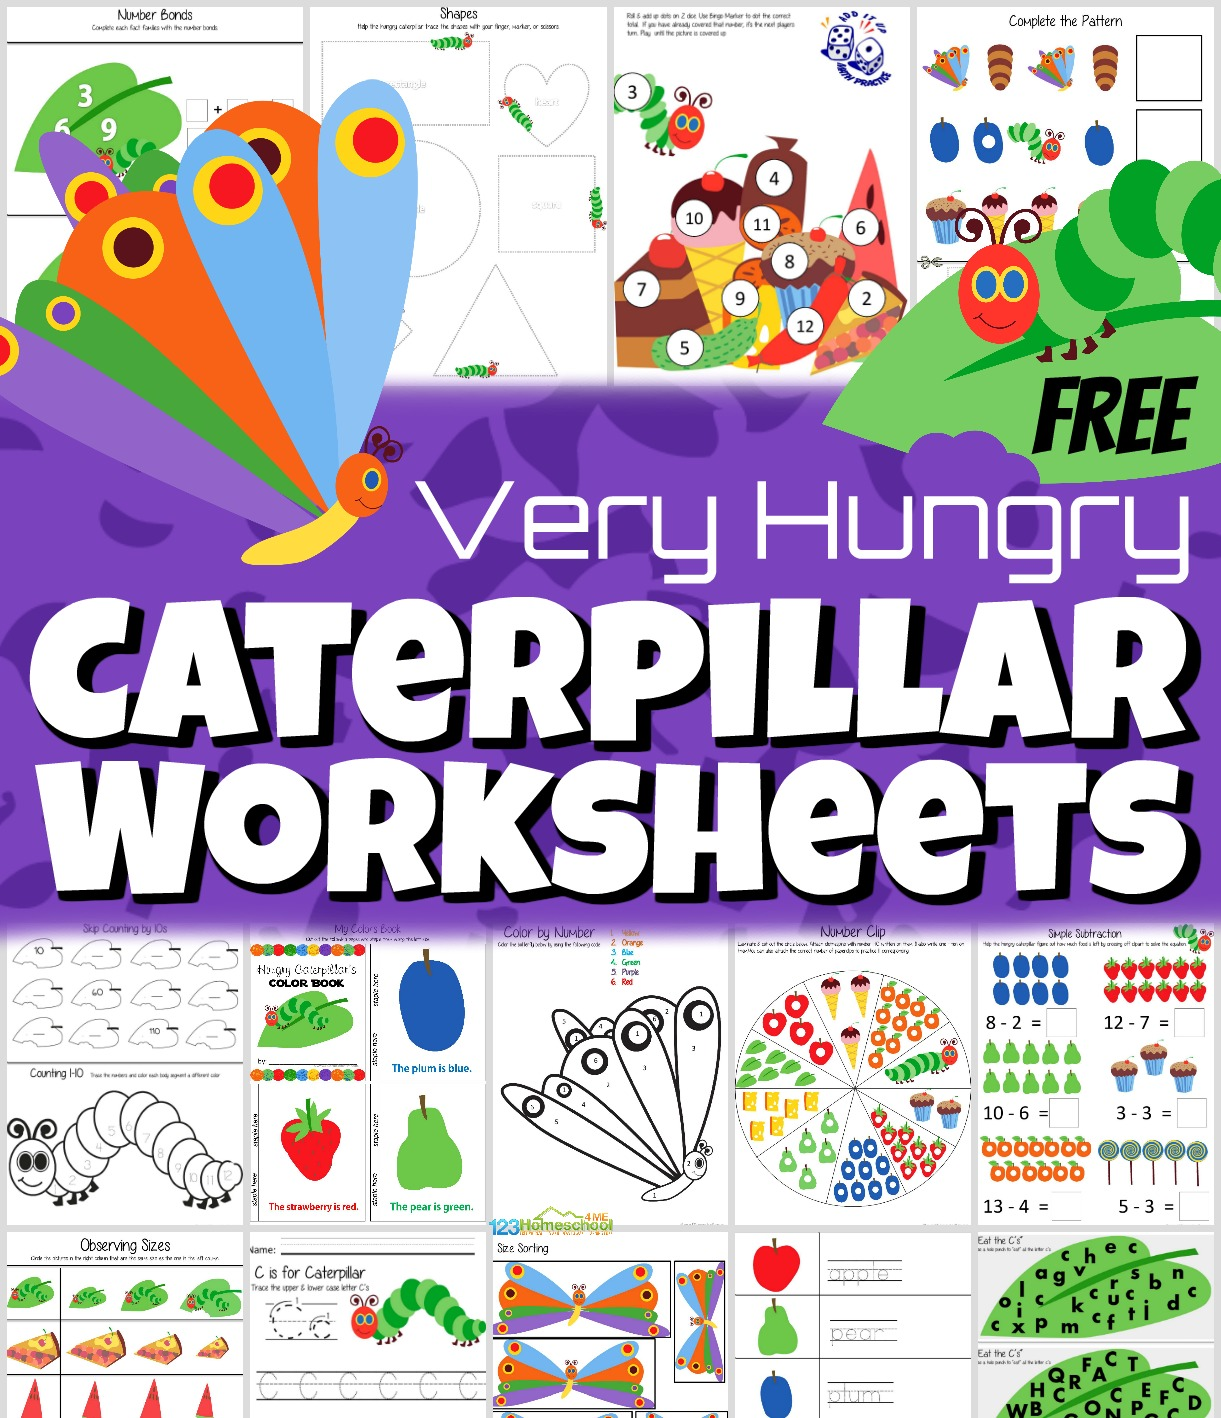 Free The Very Hungry Caterpillar Worksheets